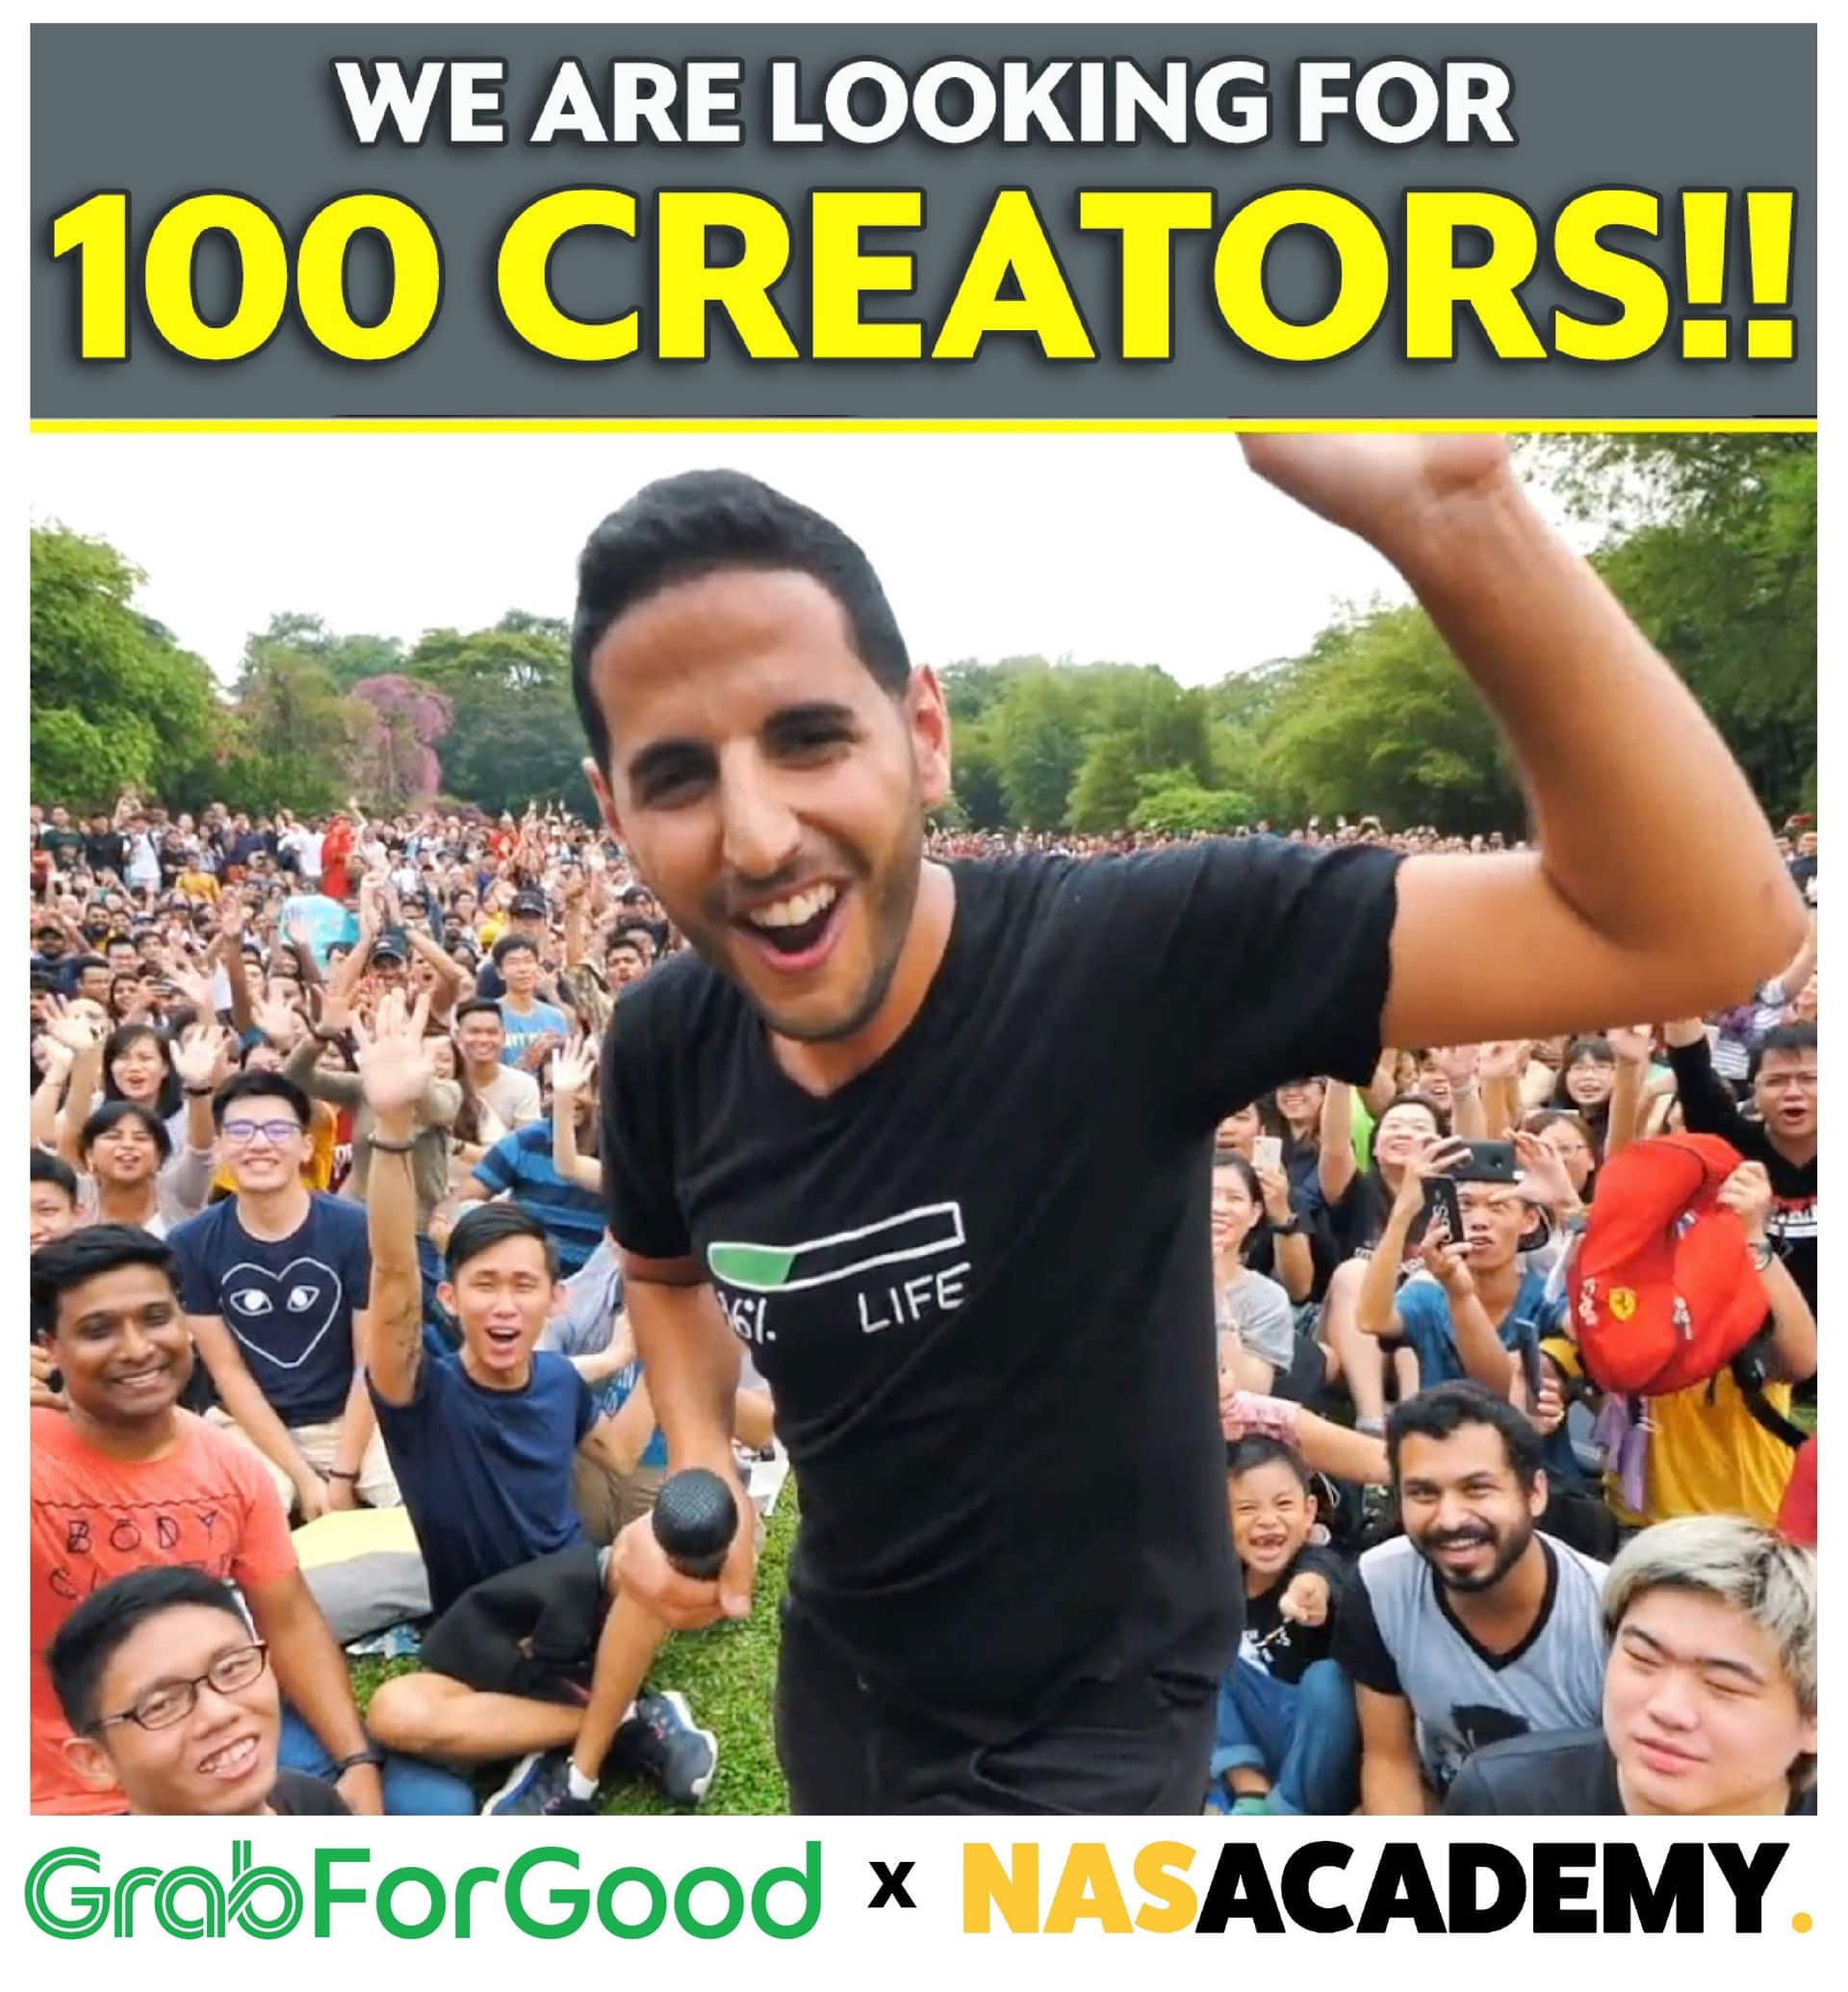 Grab is partnering NAS Academy to groom 100 budding content creators across Asia. Photo courtesy: Grab